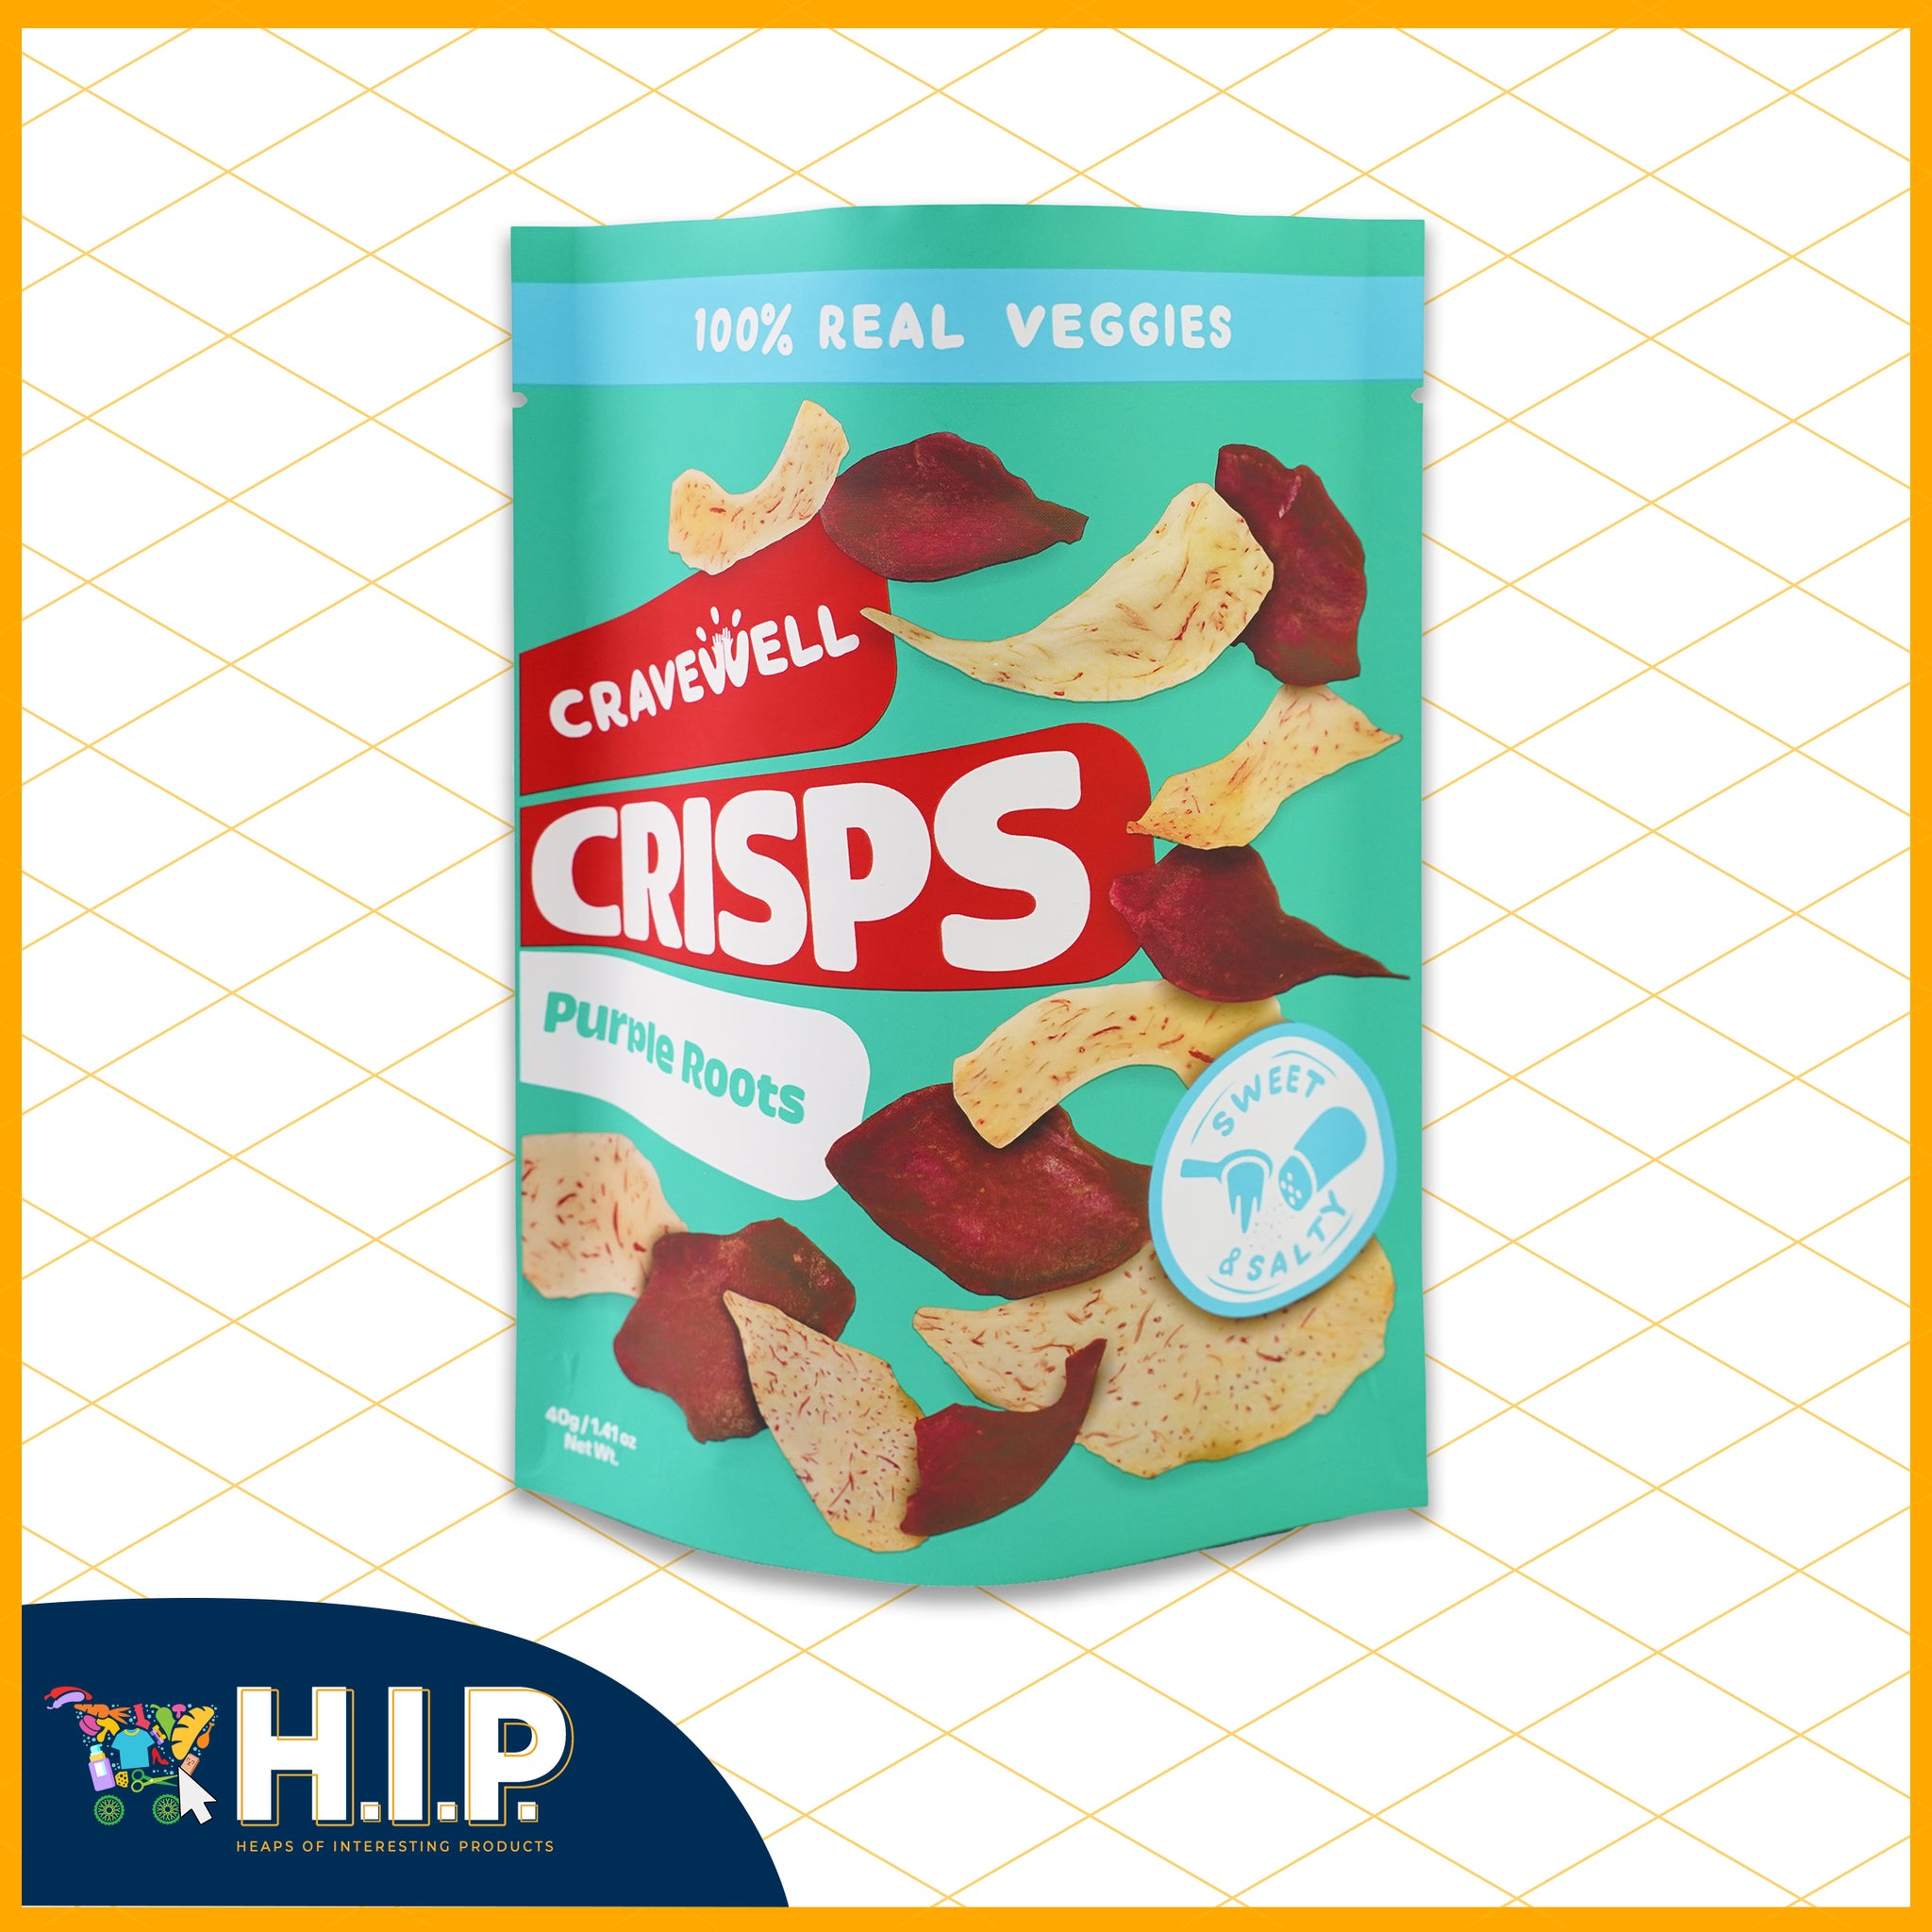 Purple Roots Crisps - Sweet and Salty